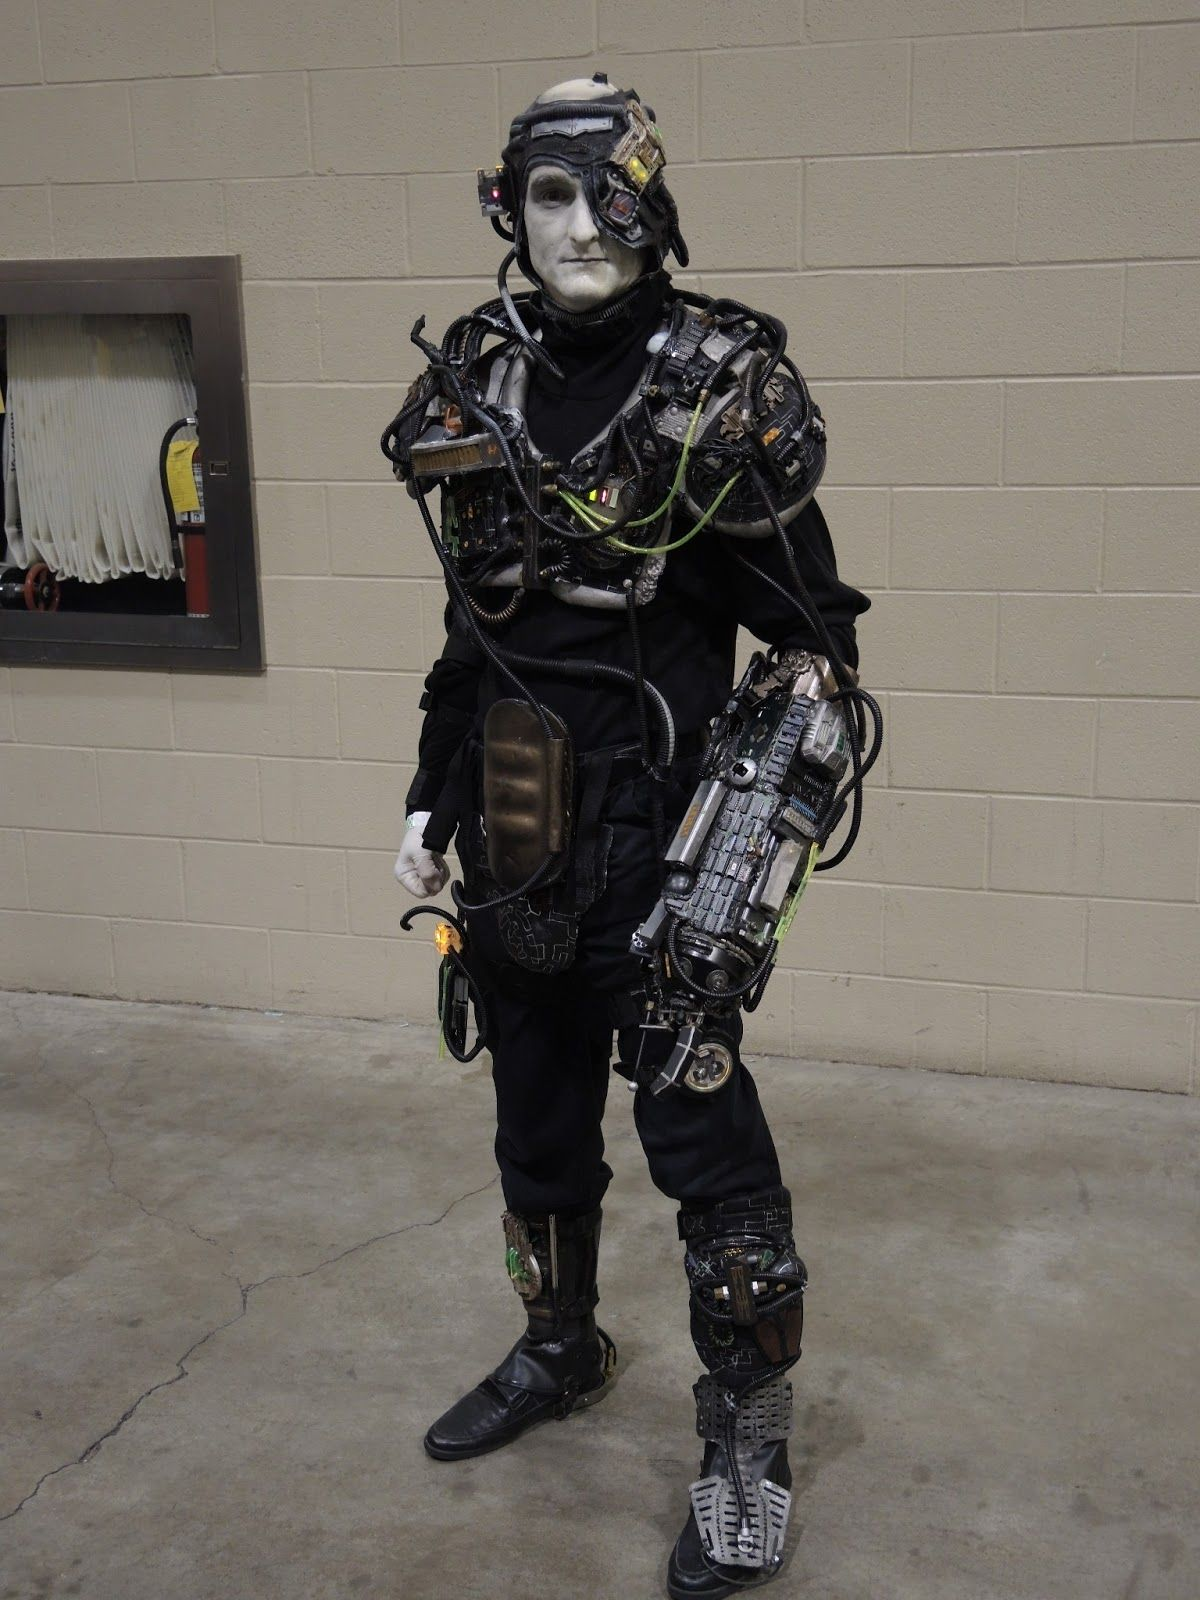 borg costume diy - Google Search | S T E A M P U N K ...